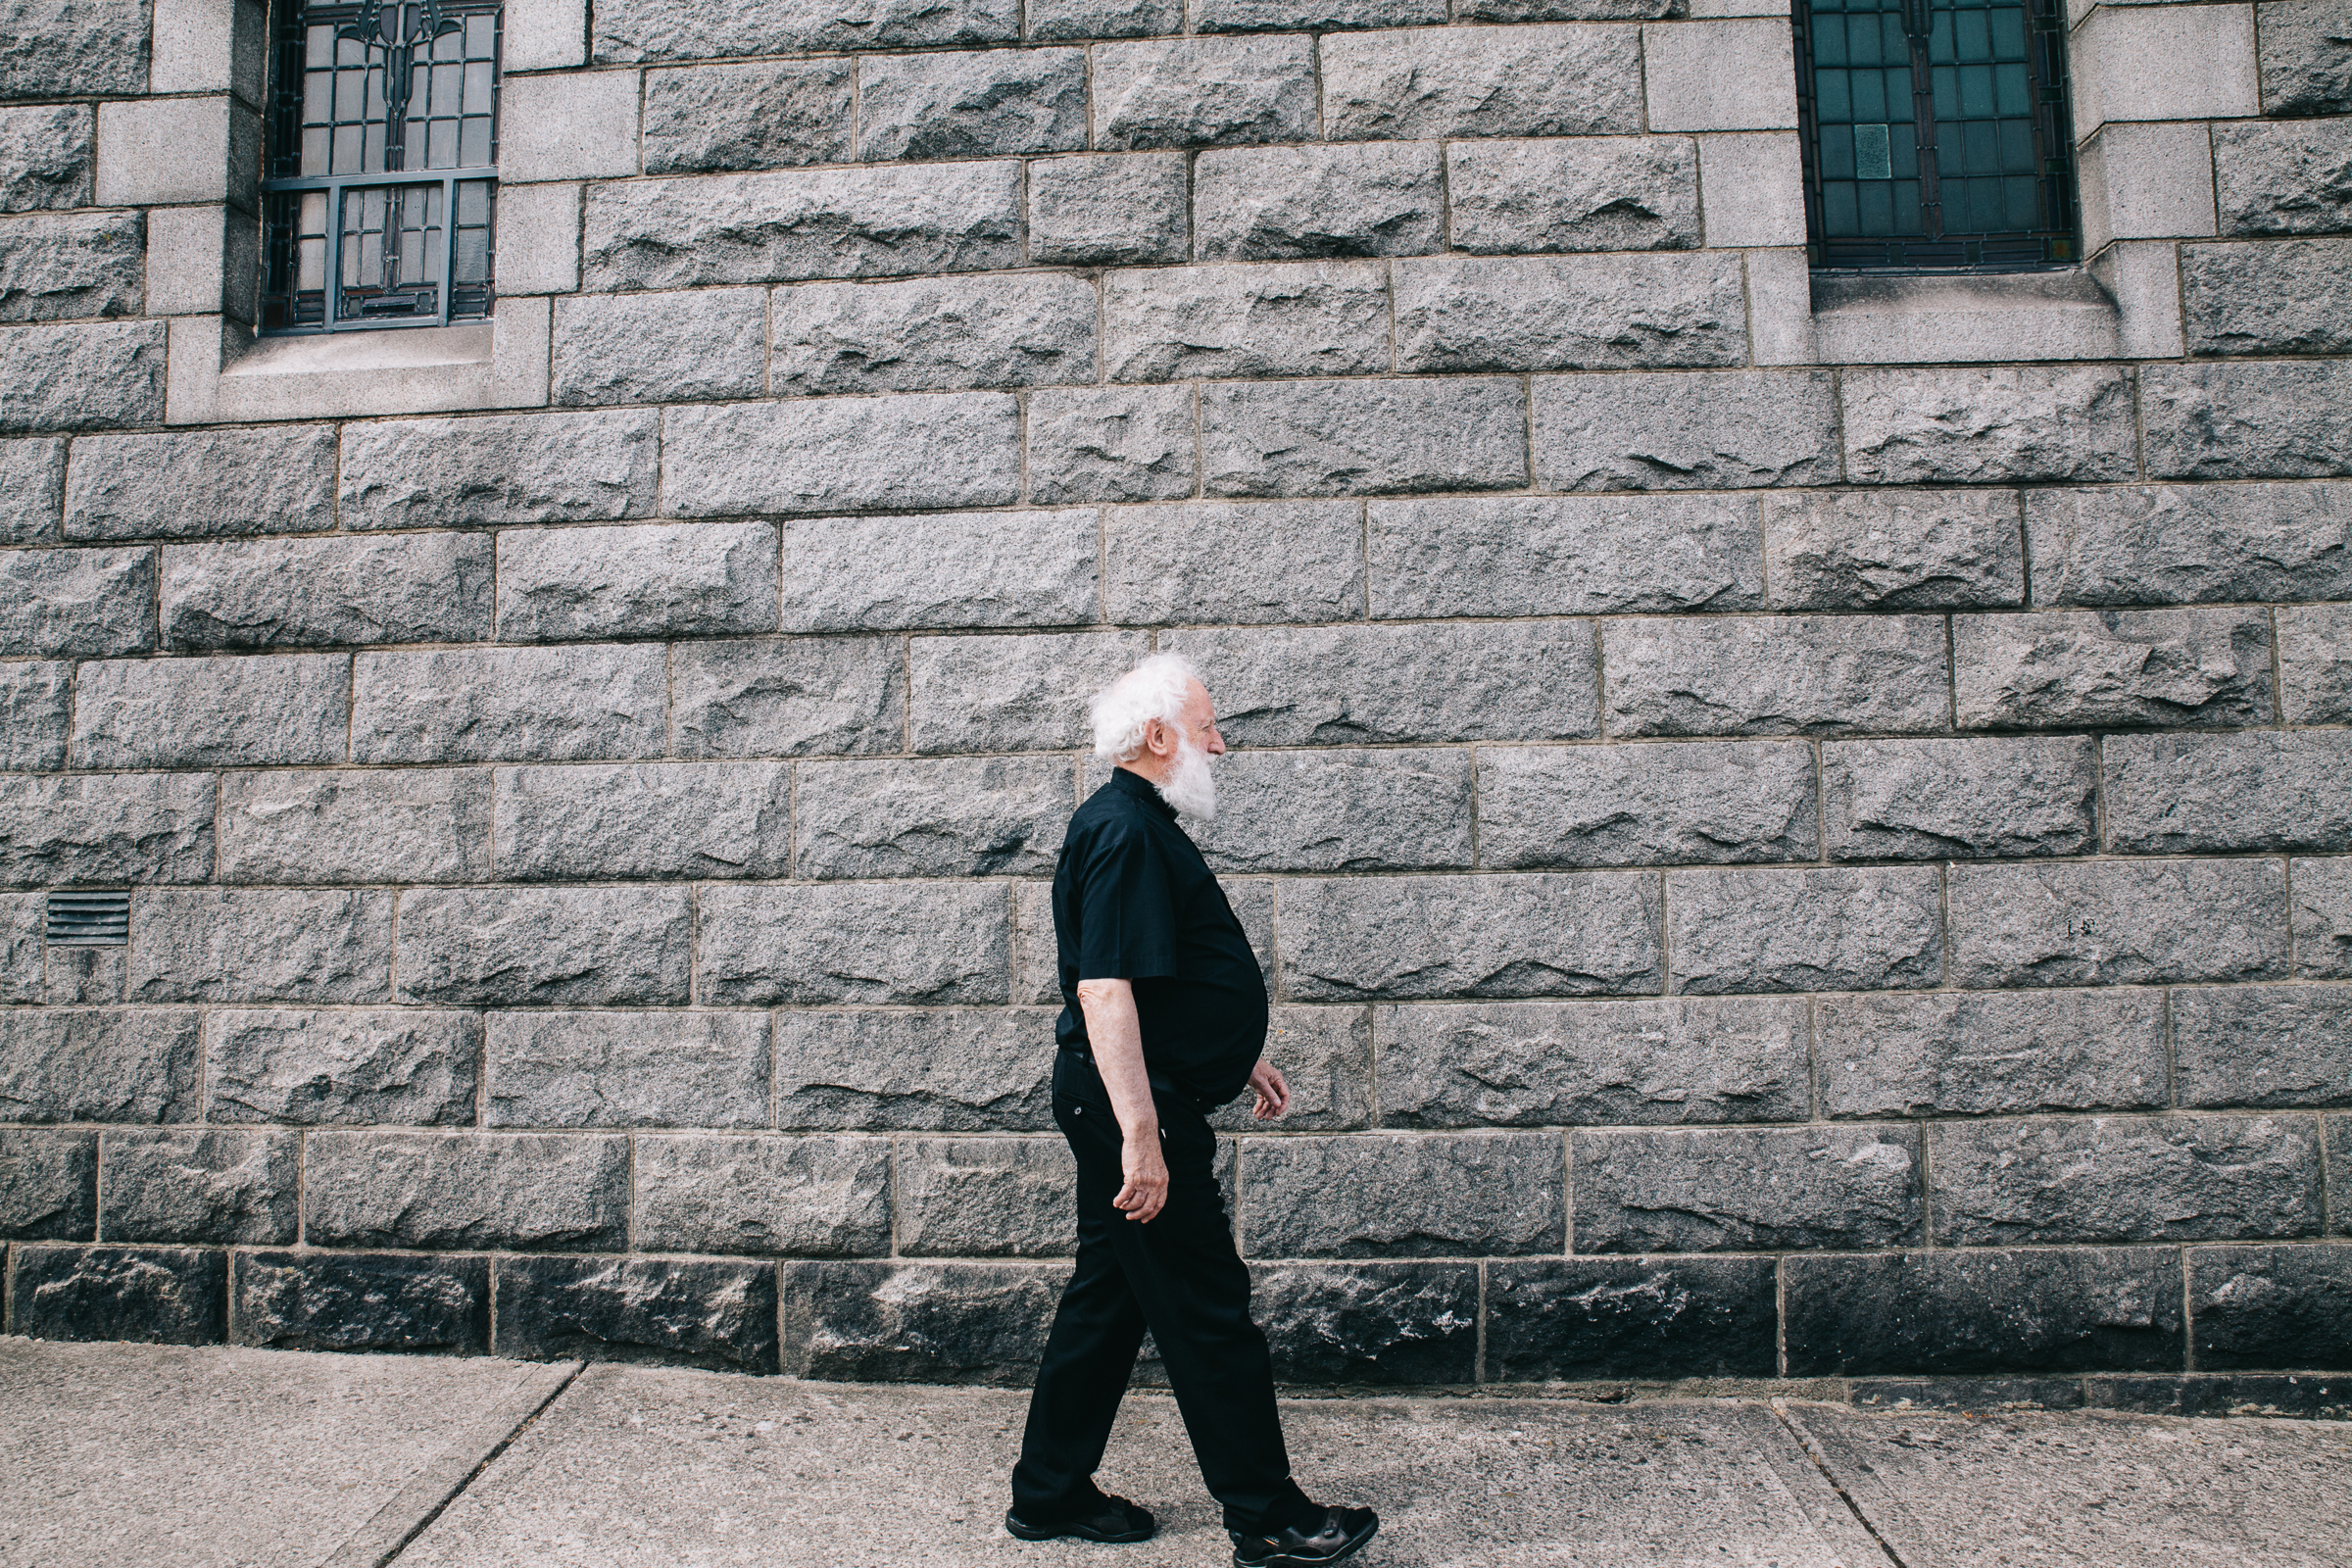 It Is Finished - After Mass Fr.Maher takes the long way home and walks from the Church back to his cell but he's not finished yet and is about to embark on another adventure.